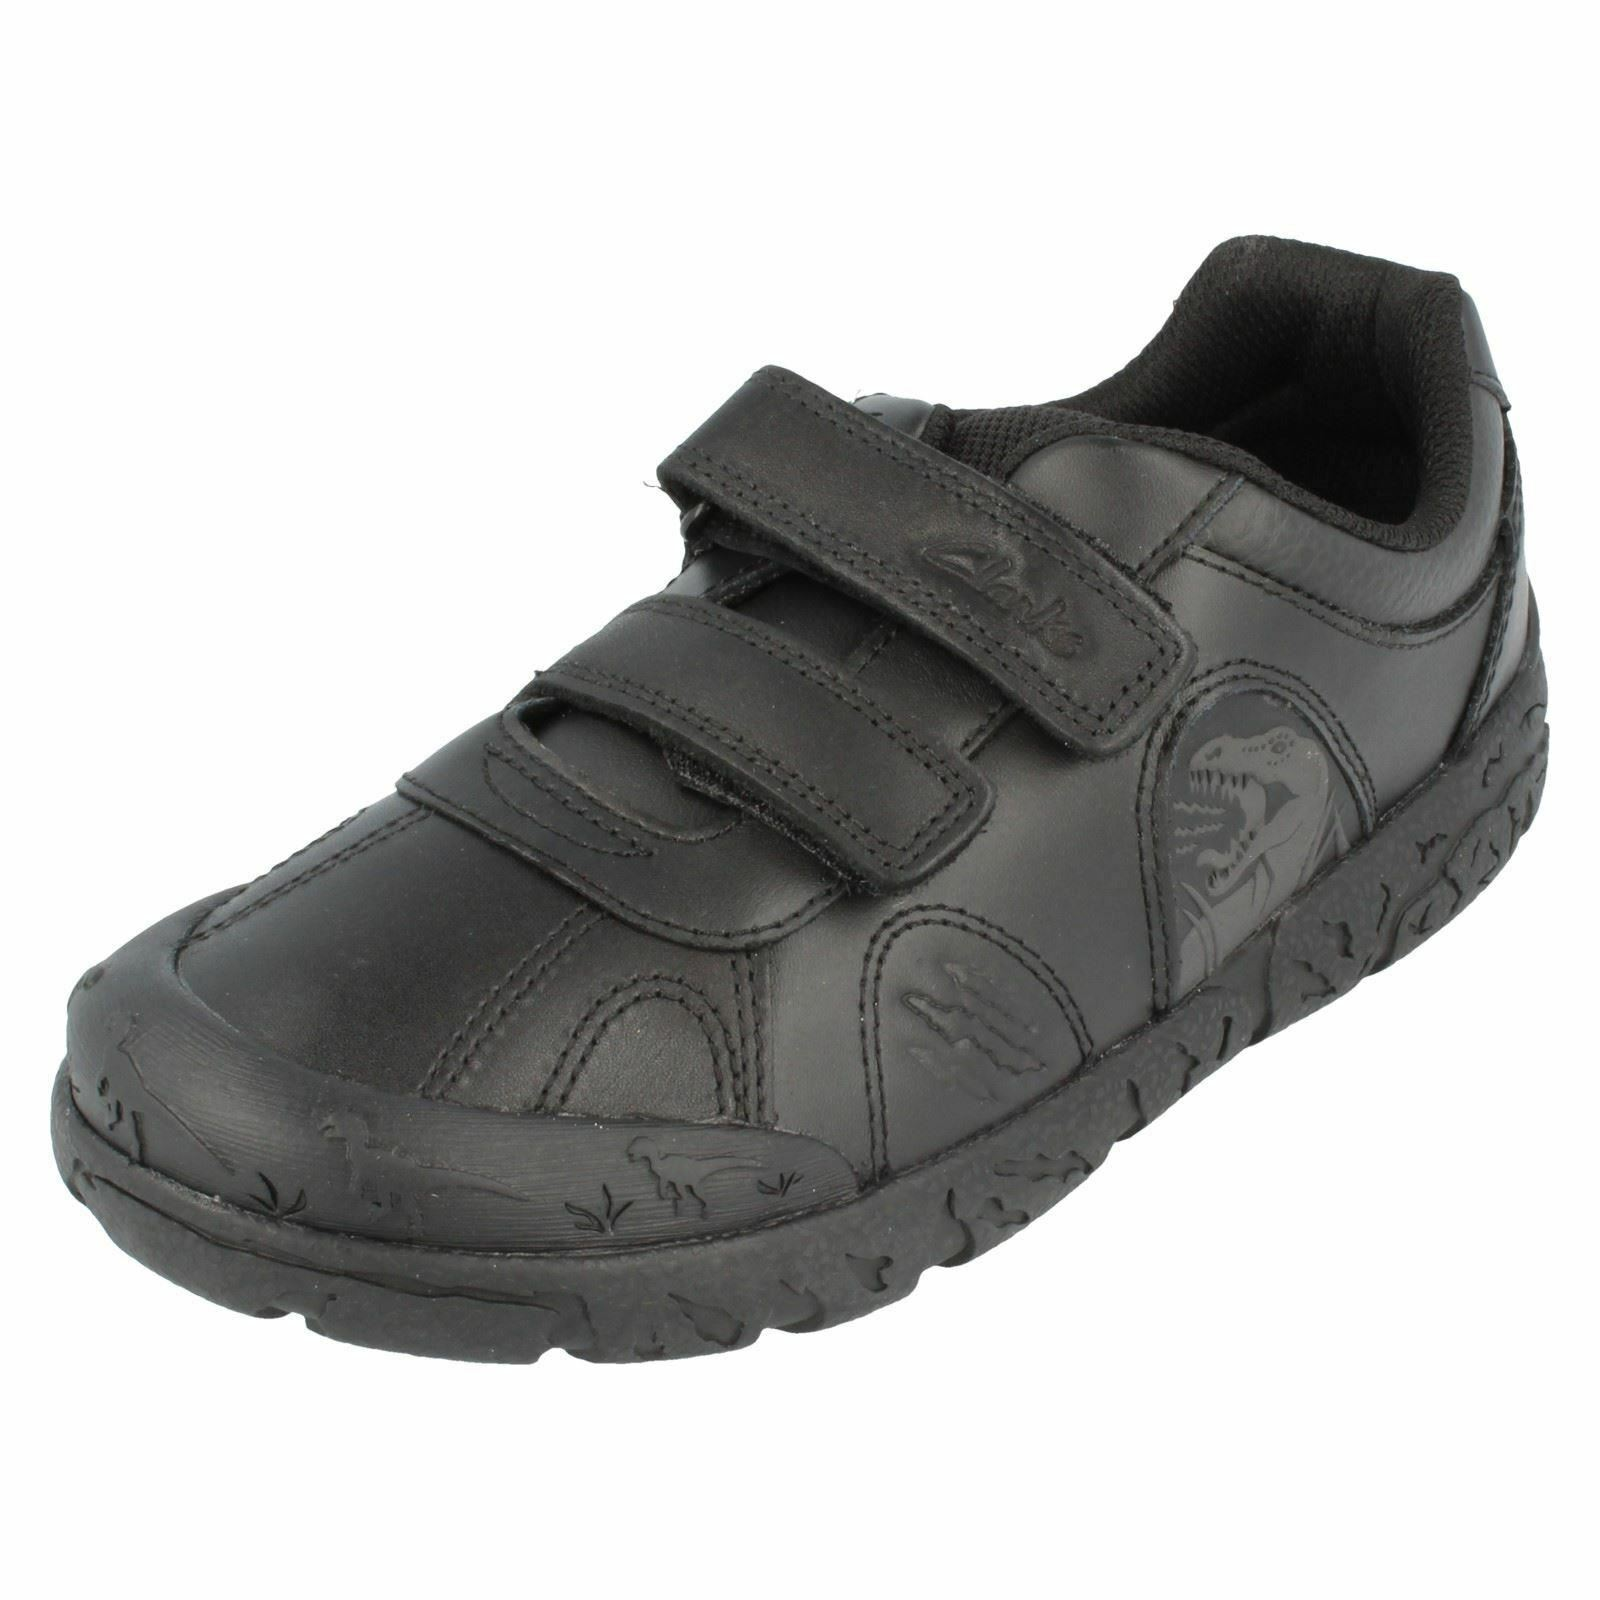 Boys Clarks School Shoes - Brontostep